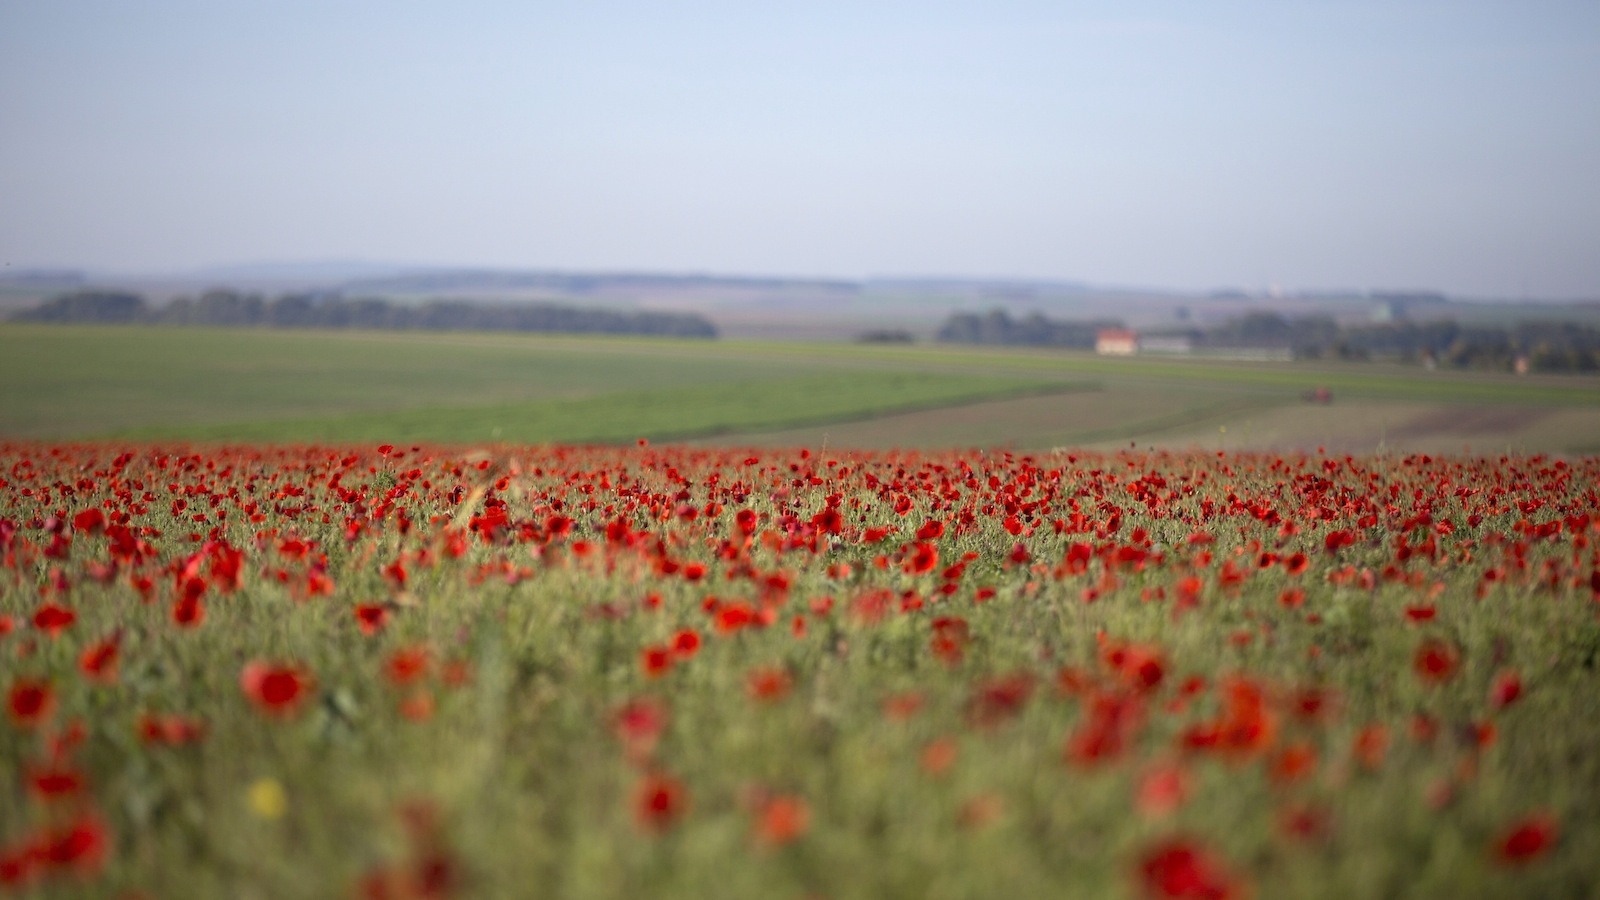 Poppies in full bloom in a field on a hilltop near Sommepy-Tahure, France on Wednesday, Oct. 14, 2014.  (AP Photo/Virginia Mayo)